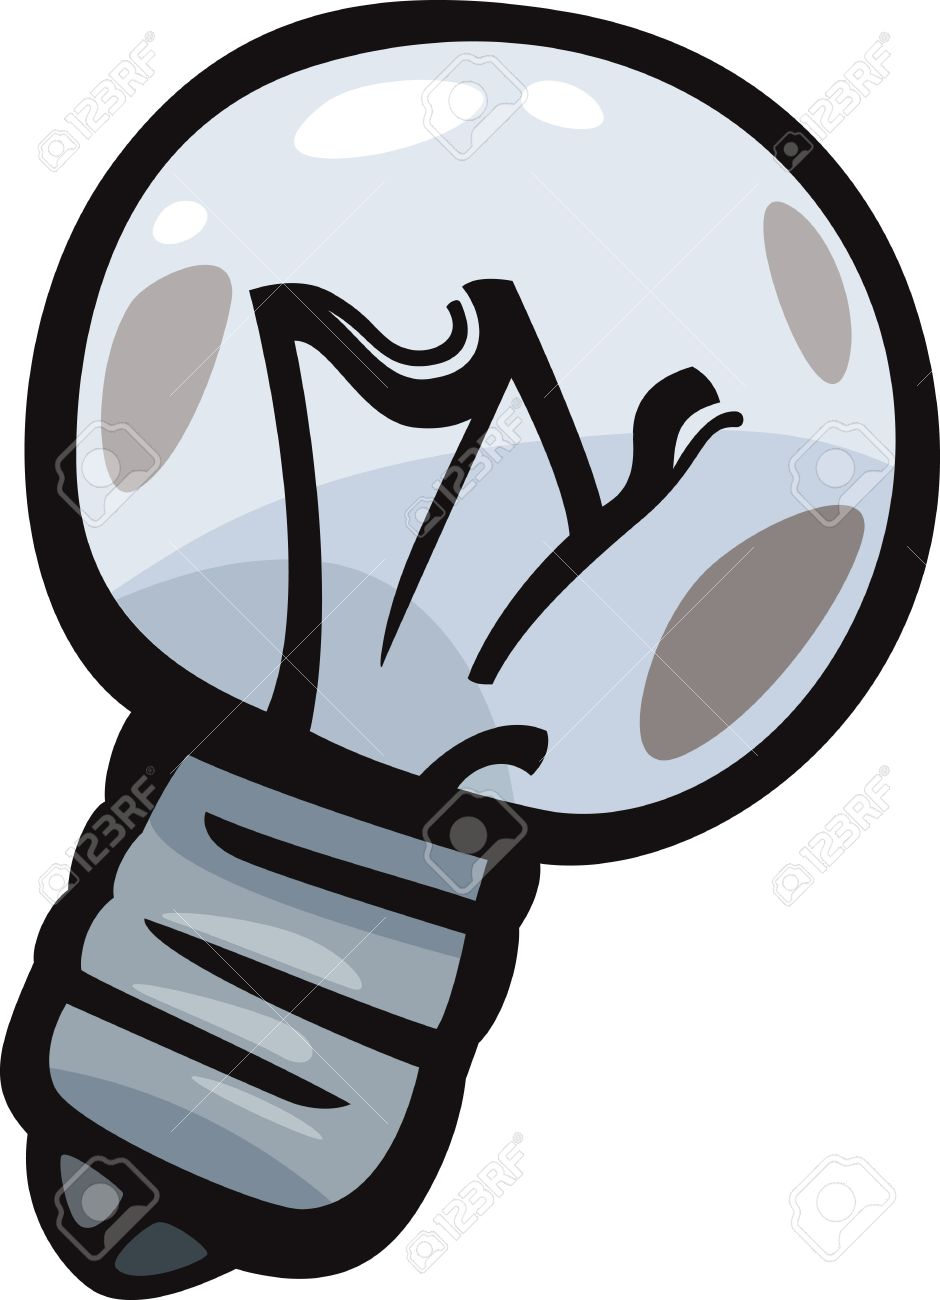 Cartoon Illustration Of Burned Out Old Bulb Clip Art Royalty Free.